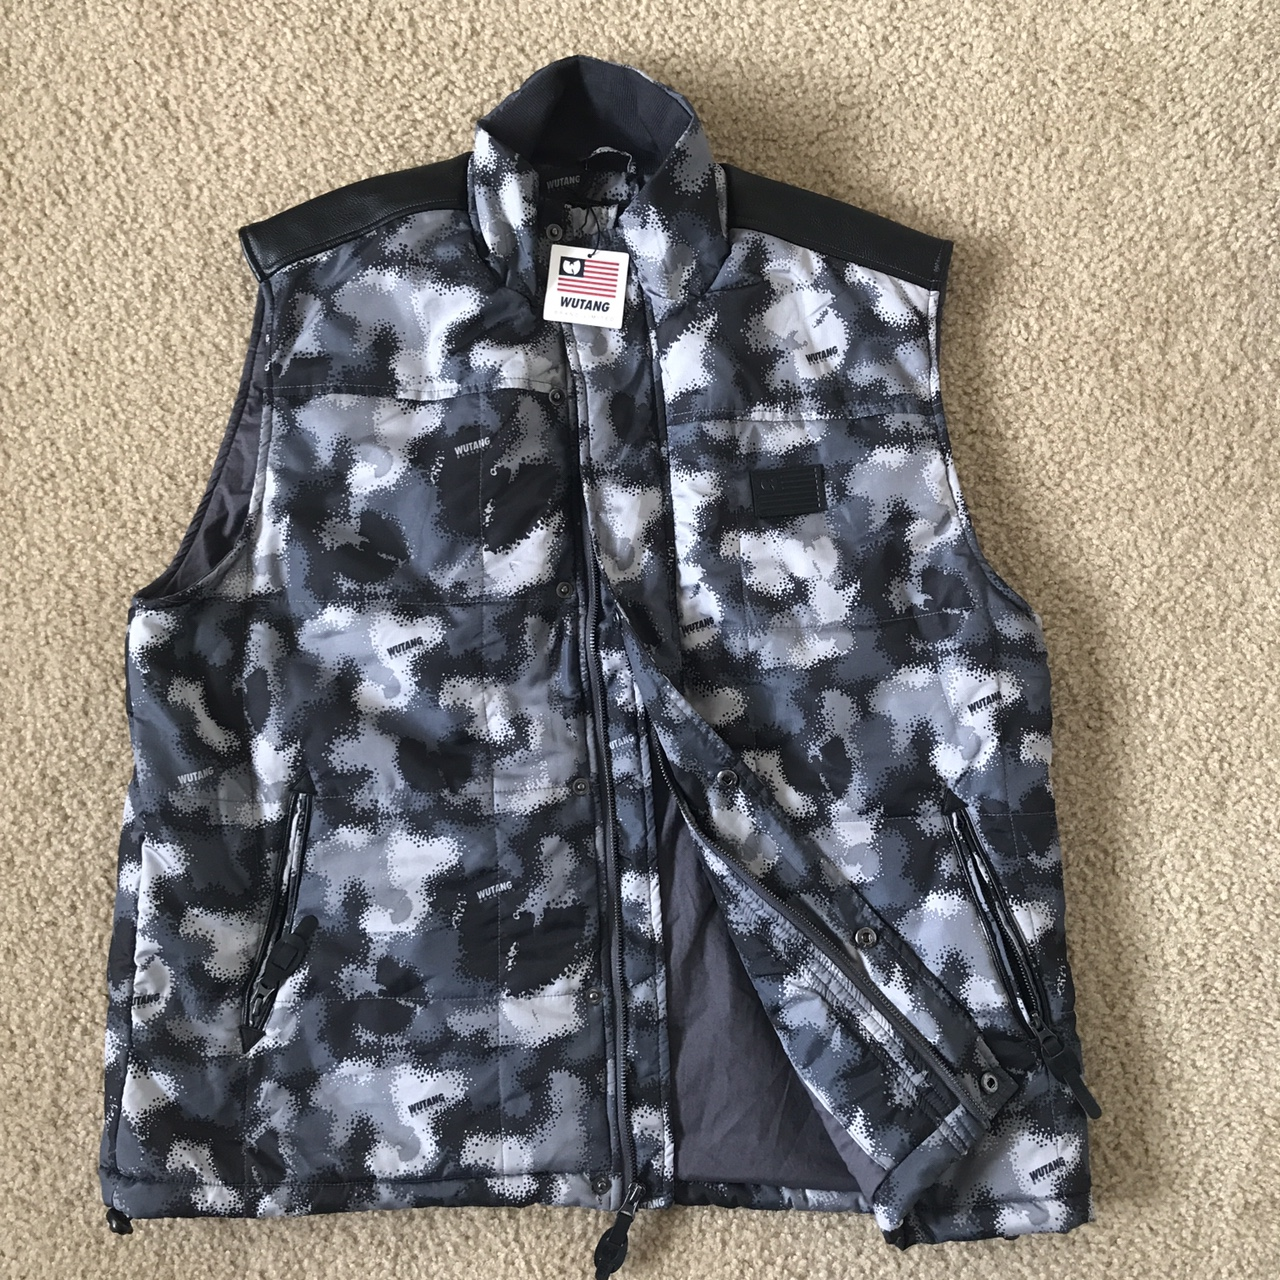 Product Image 1 - This rare camouflage Wu Tang